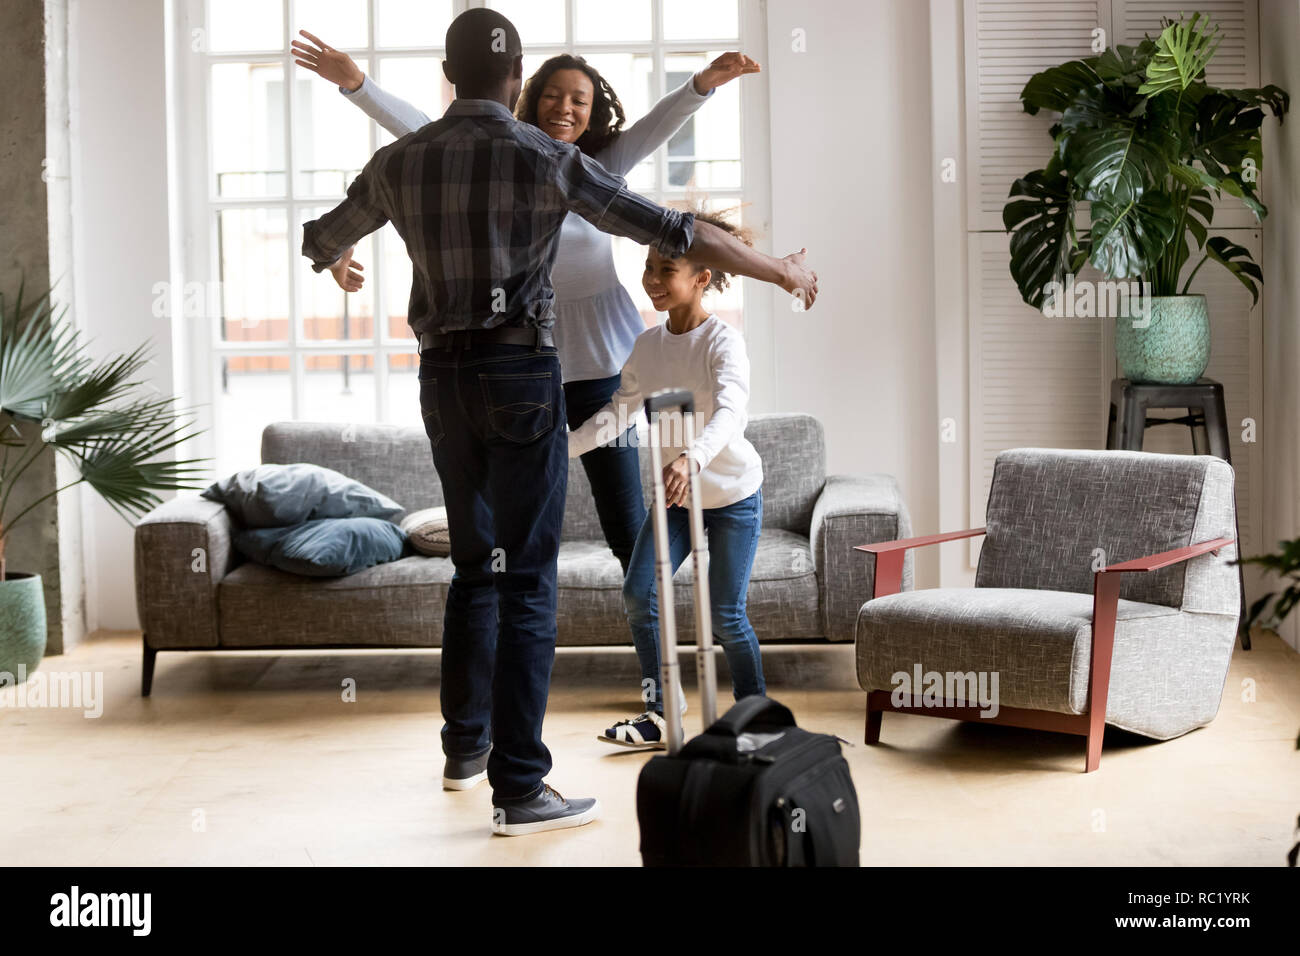 Happy black family excited to meet dad coming home - Stock Image